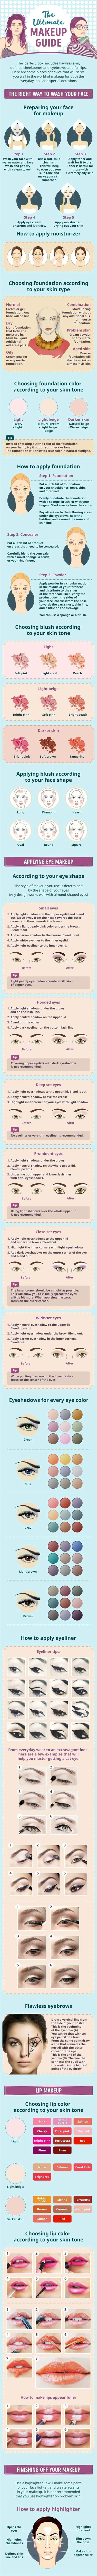 Best Makeup Tutorials for Teens -The Ultimate Makeup Guide You Can't Live Without - Easy Makeup Ideas for Beginners - Step by Step Tutorials for Foundation, Eye Shadow, Lipstick, Cheeks, Contour, Eyeb